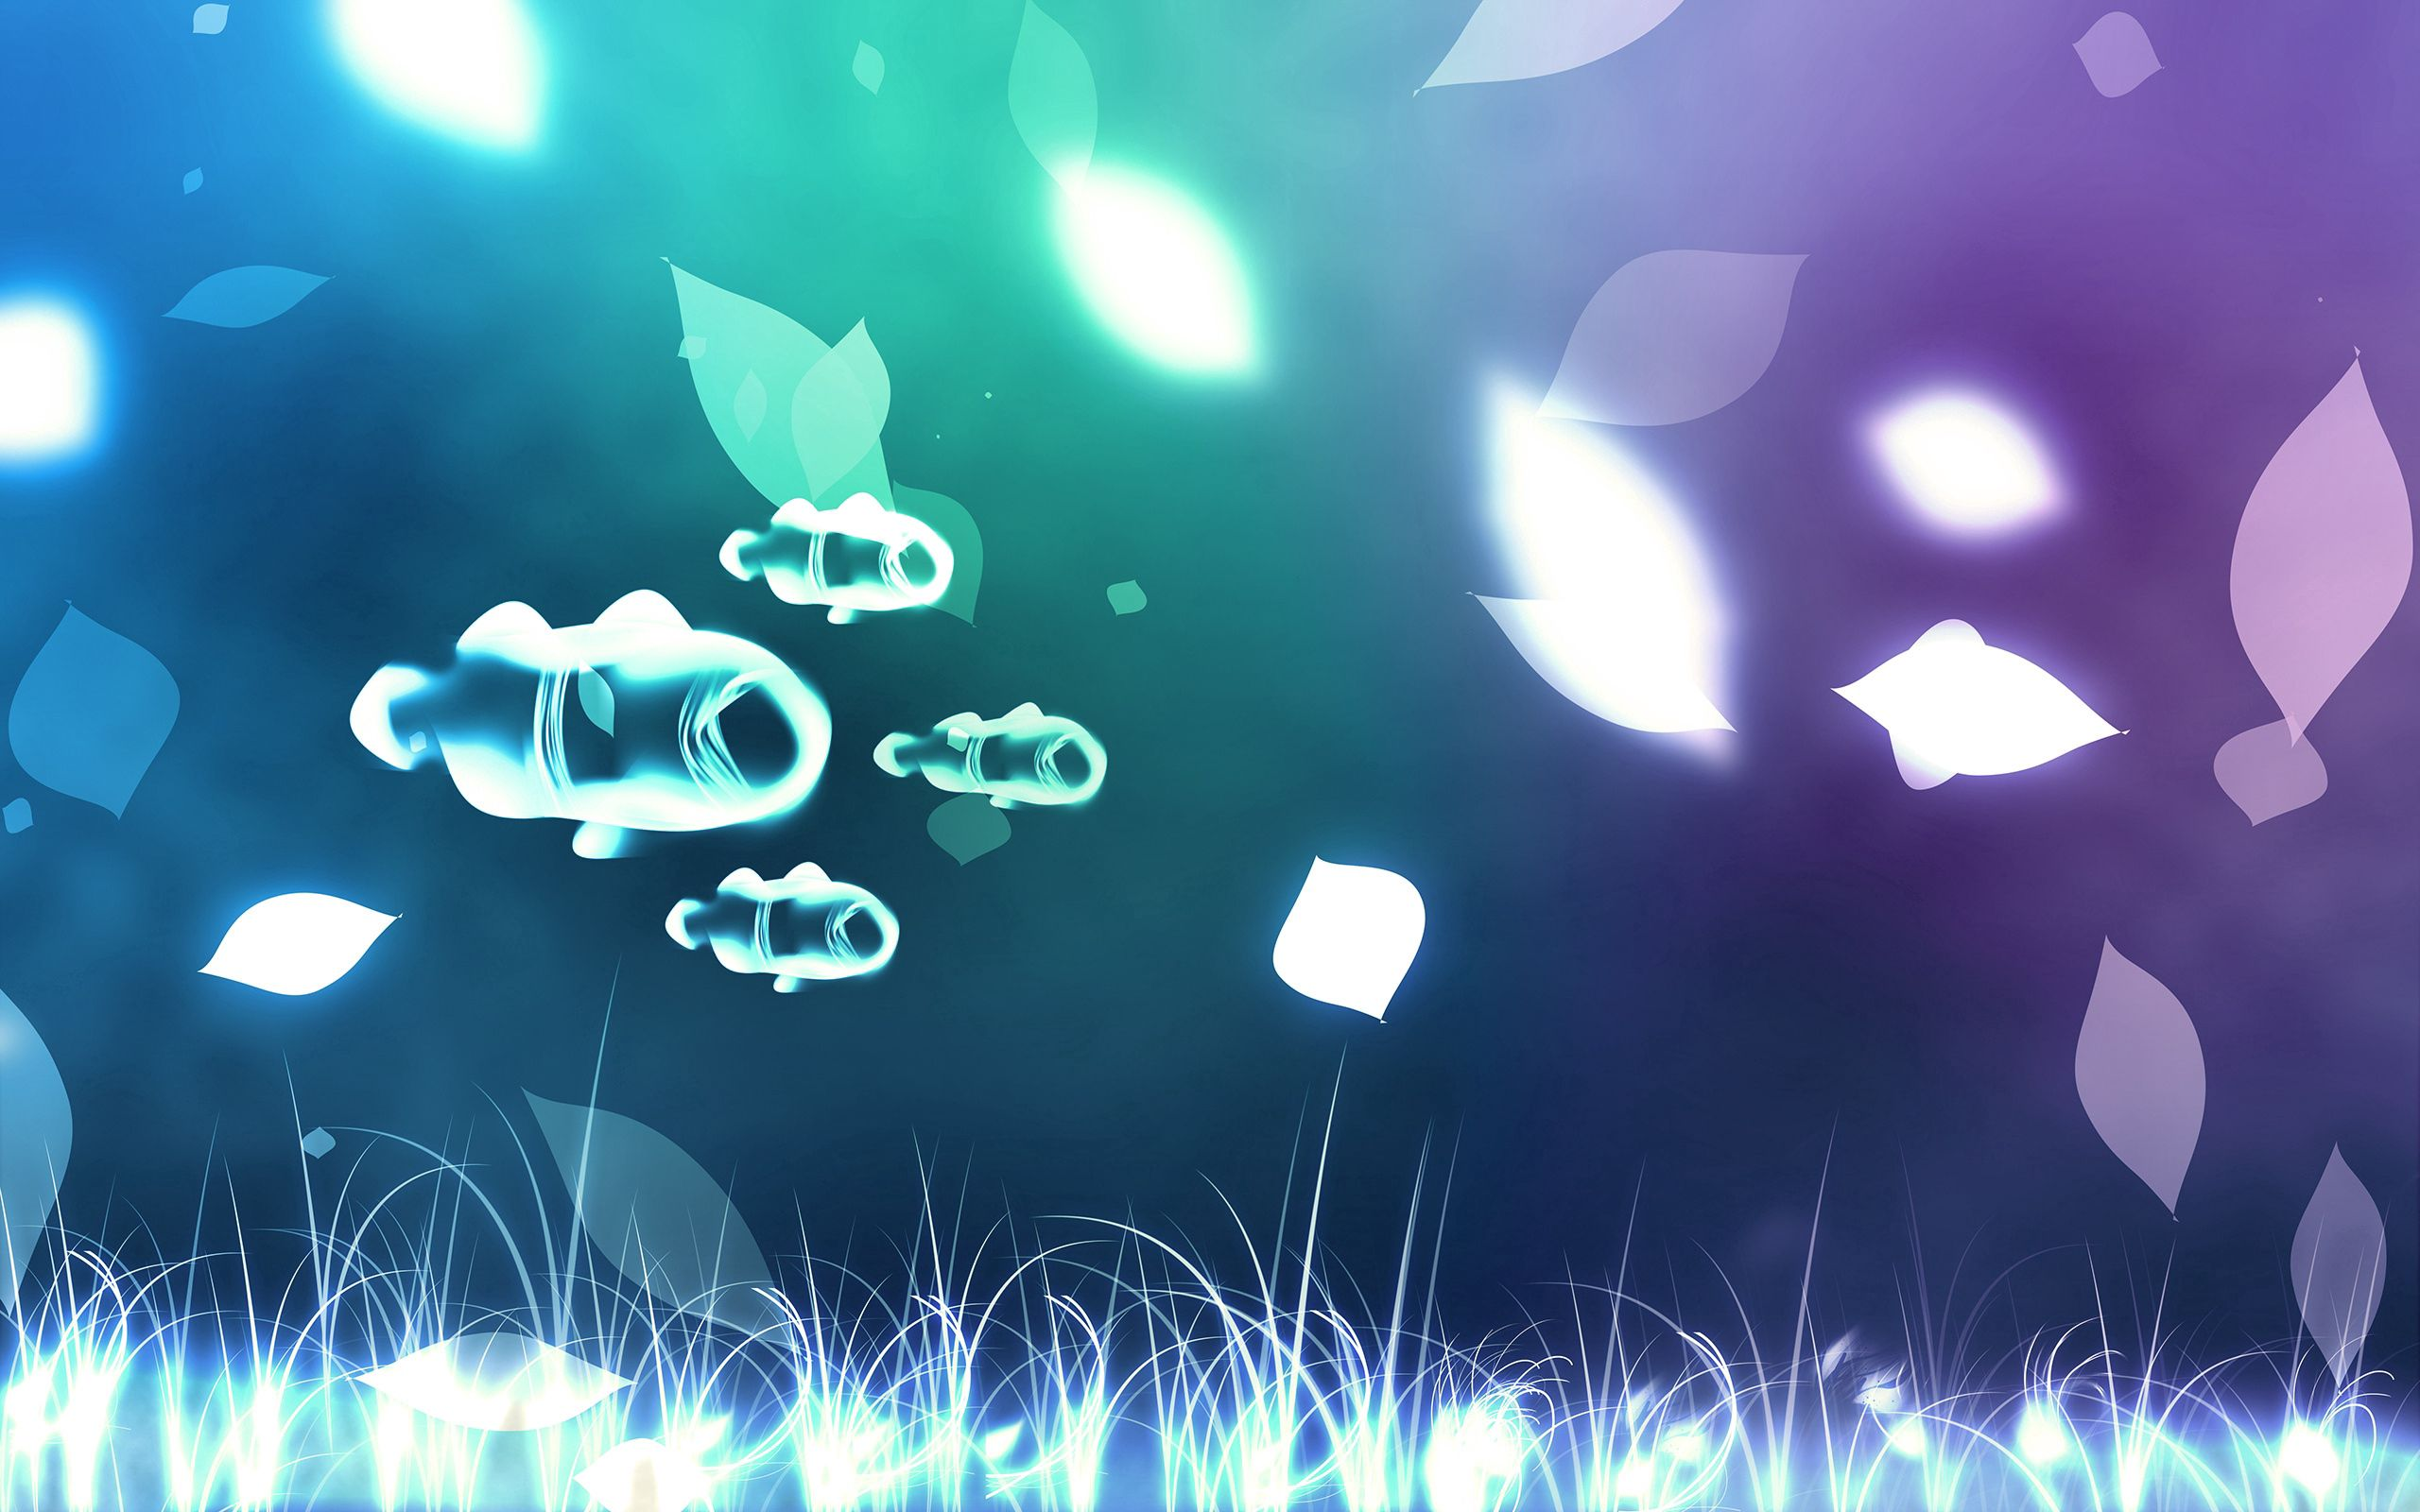 141703 download wallpaper Abstract, Glare, Shine, Light, Bright, Stains, Spots, Fishes screensavers and pictures for free